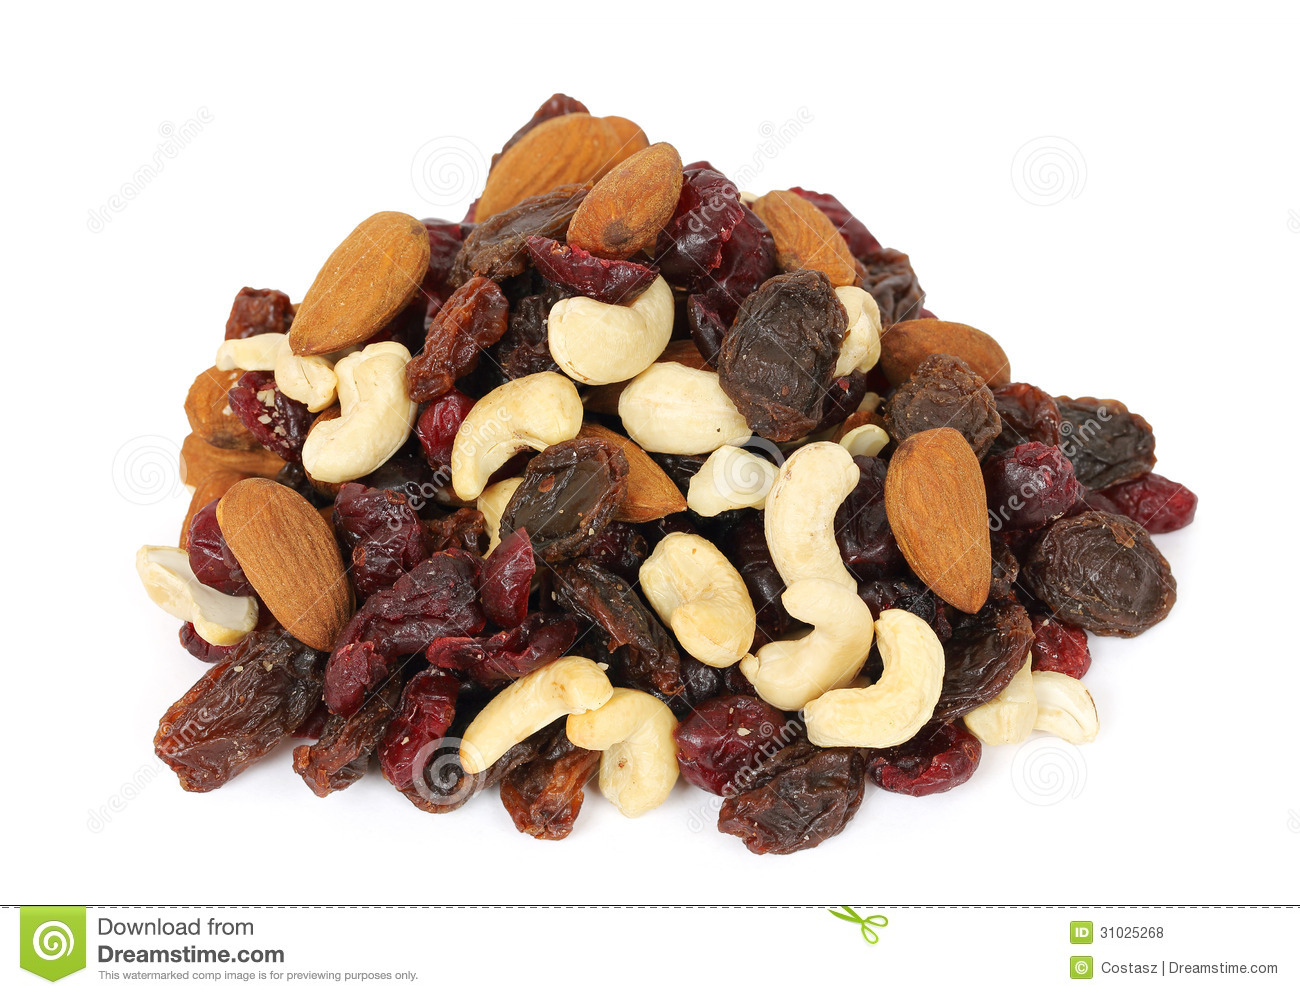 Dry Nuts Hd Free Image: Dry Nuts Royalty Free Stock Photos